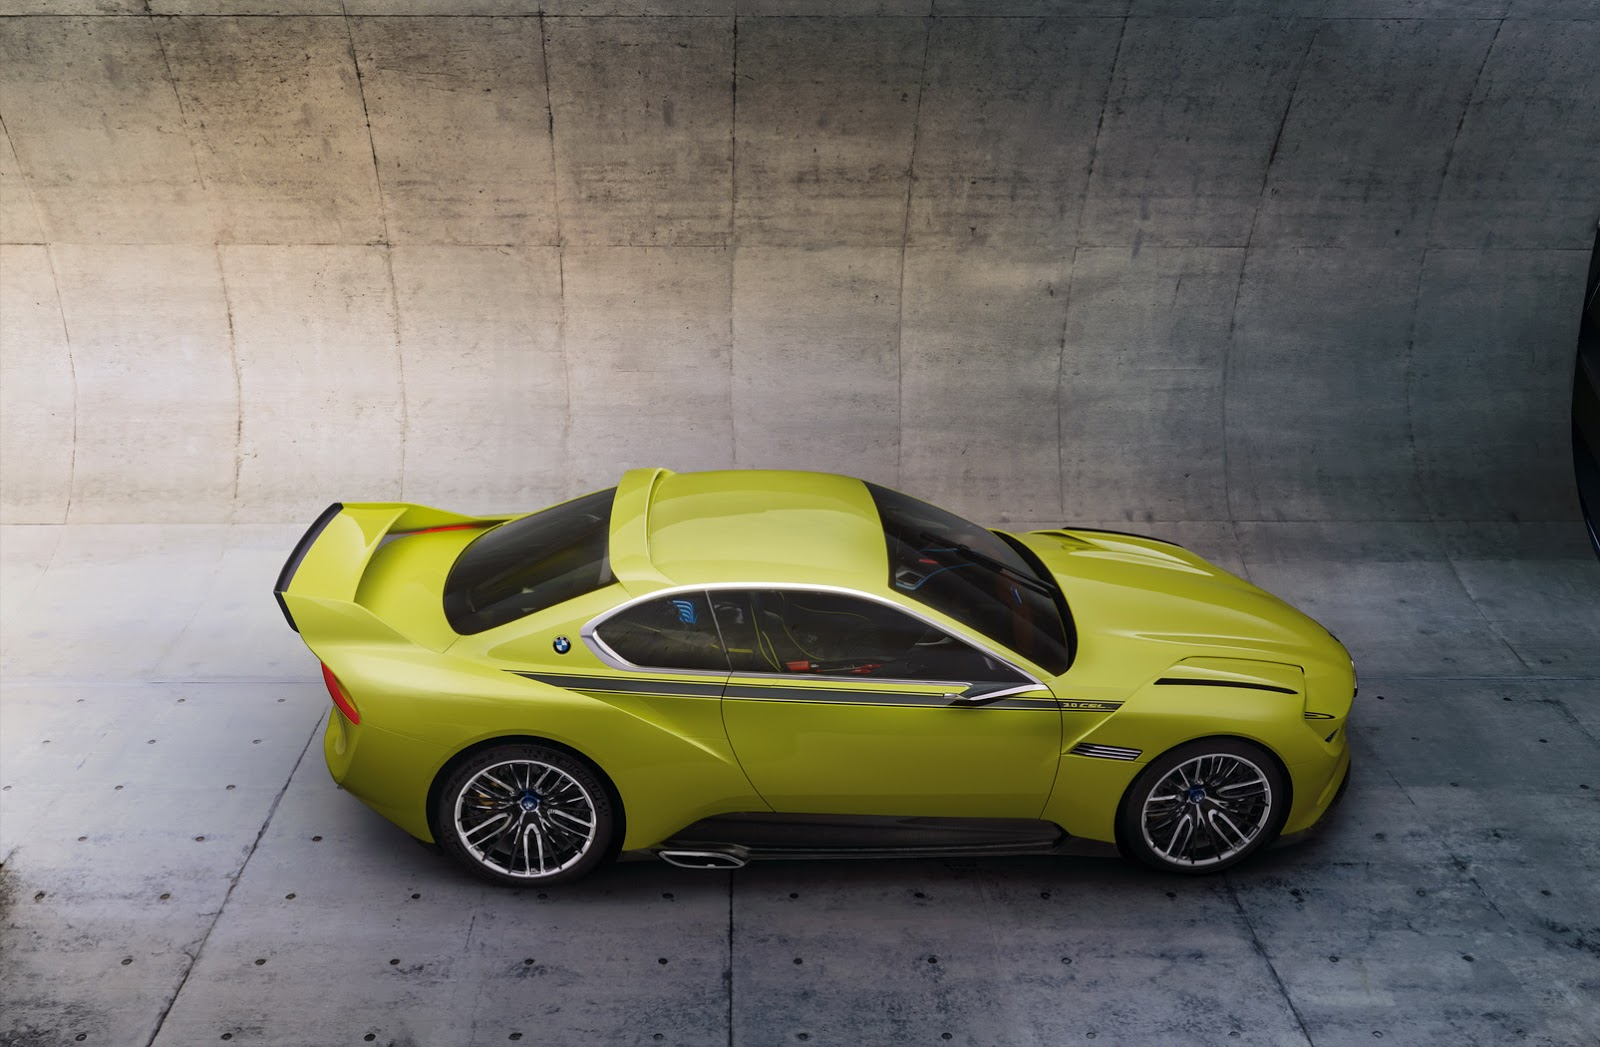 new bmw 3 0 csl hommage concept the official rundown photos carscoops. Black Bedroom Furniture Sets. Home Design Ideas